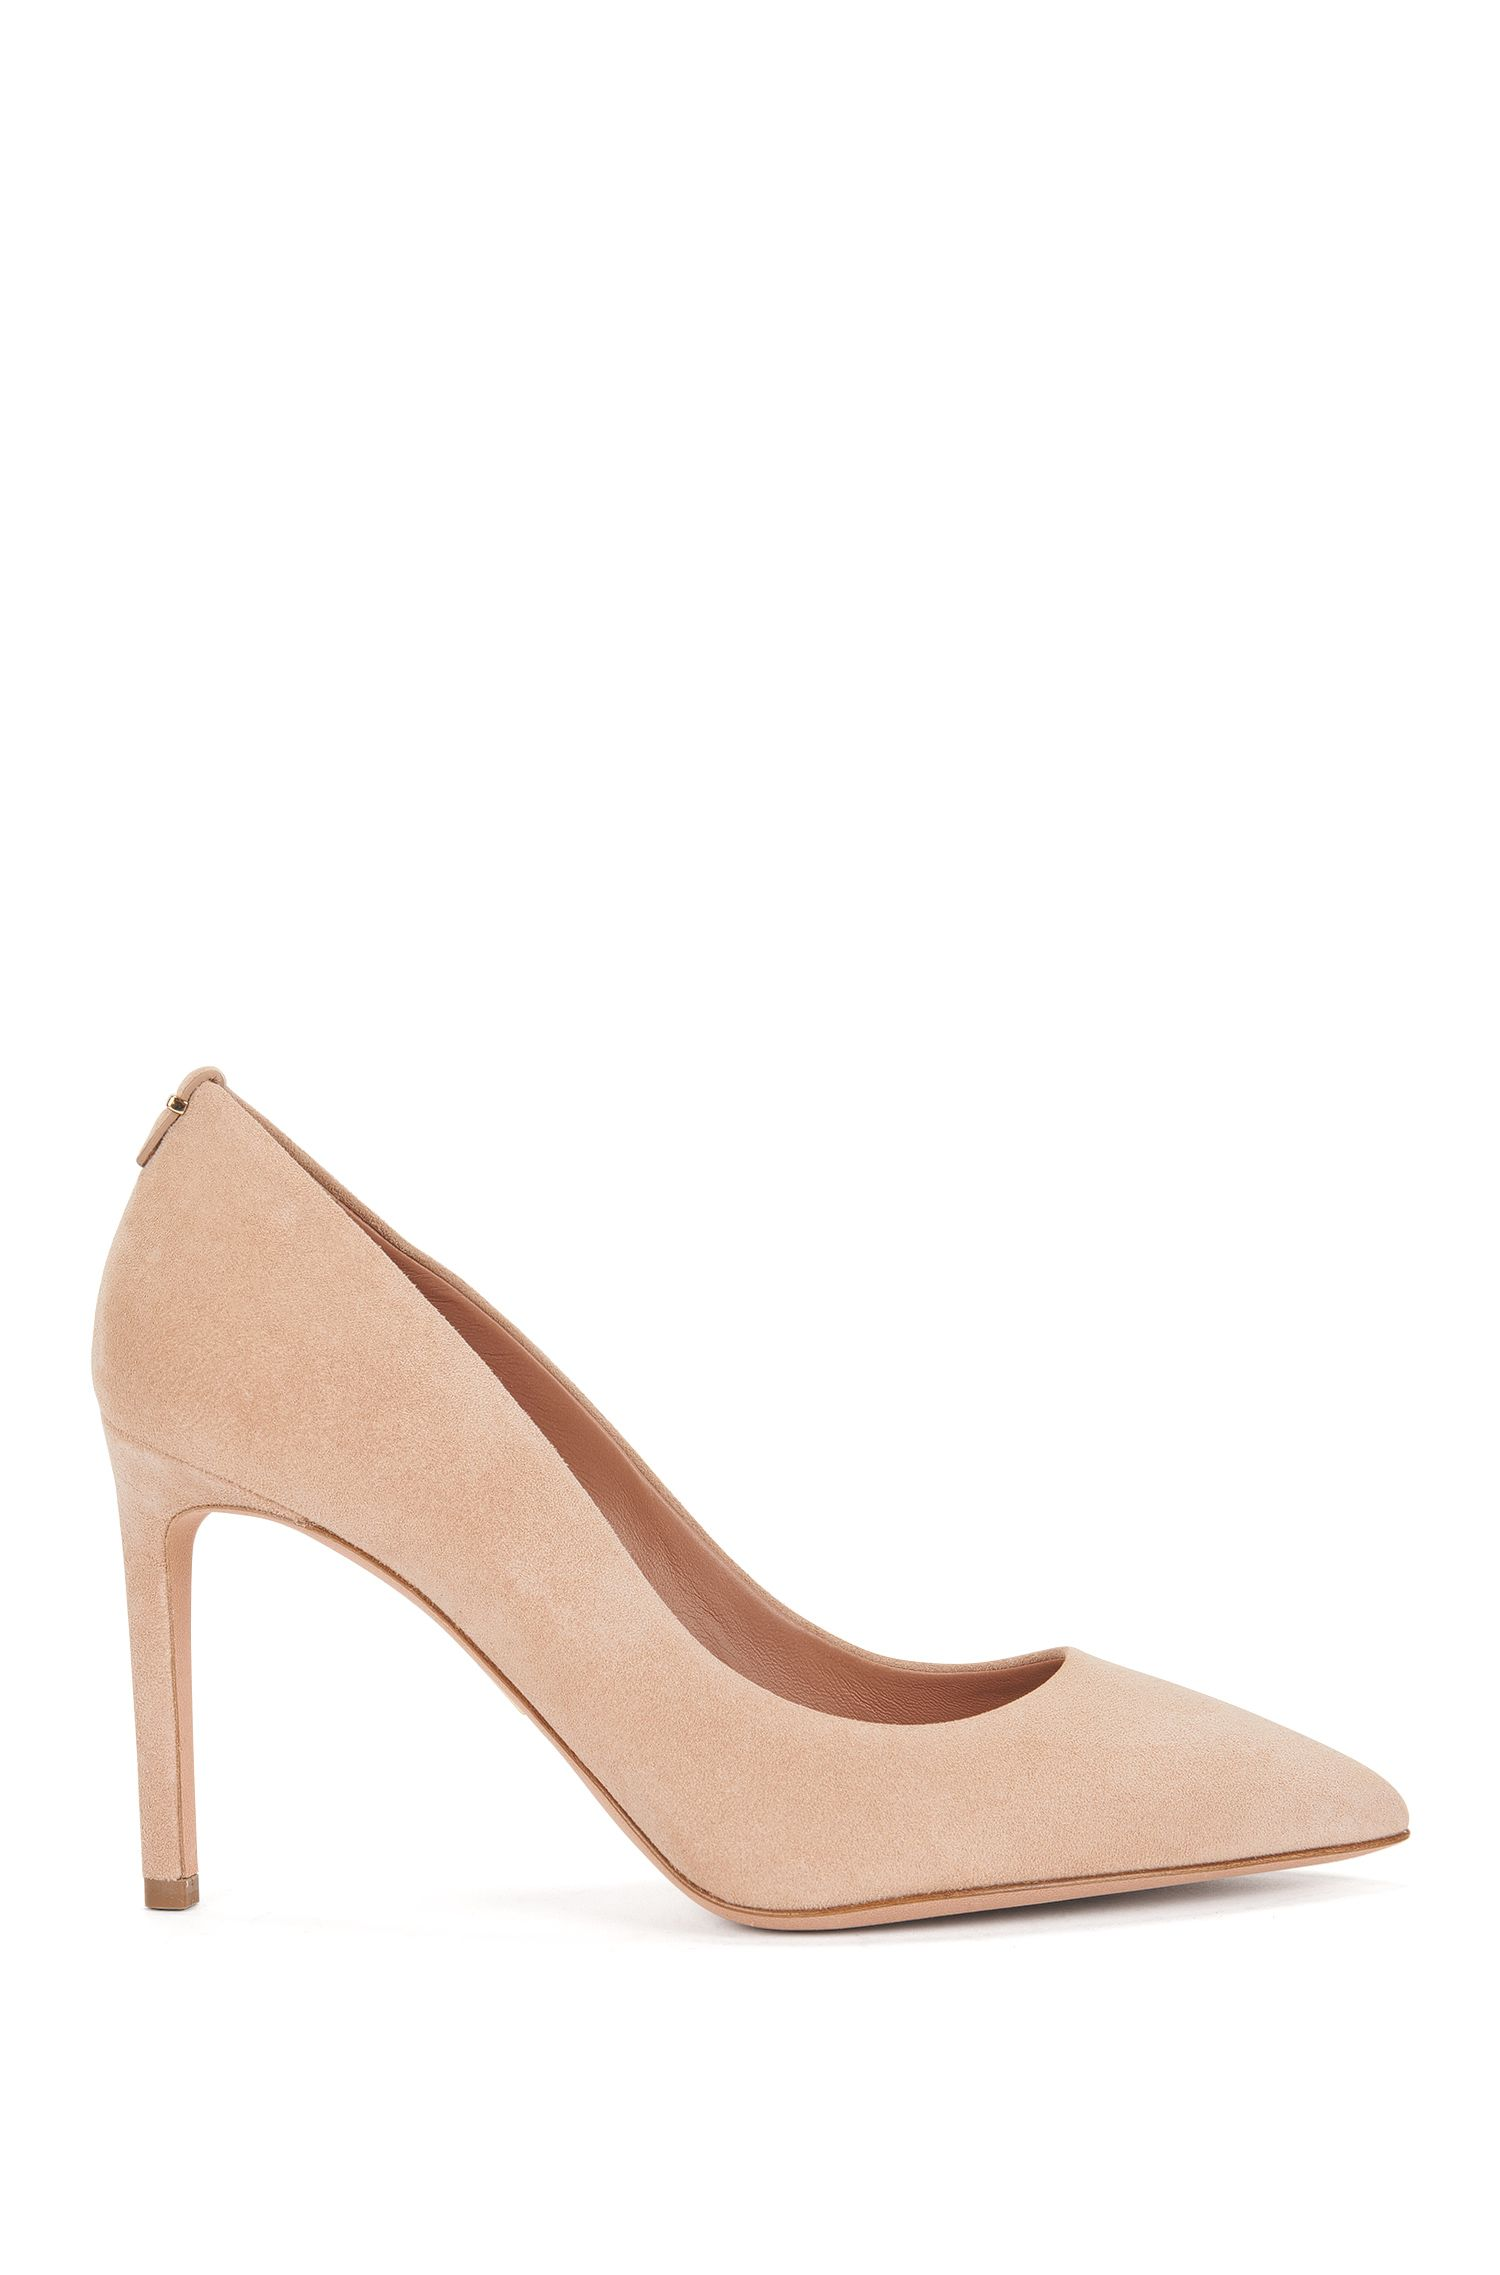 BOSS Luxury Staple Pumps aus italienischem Veloursleder